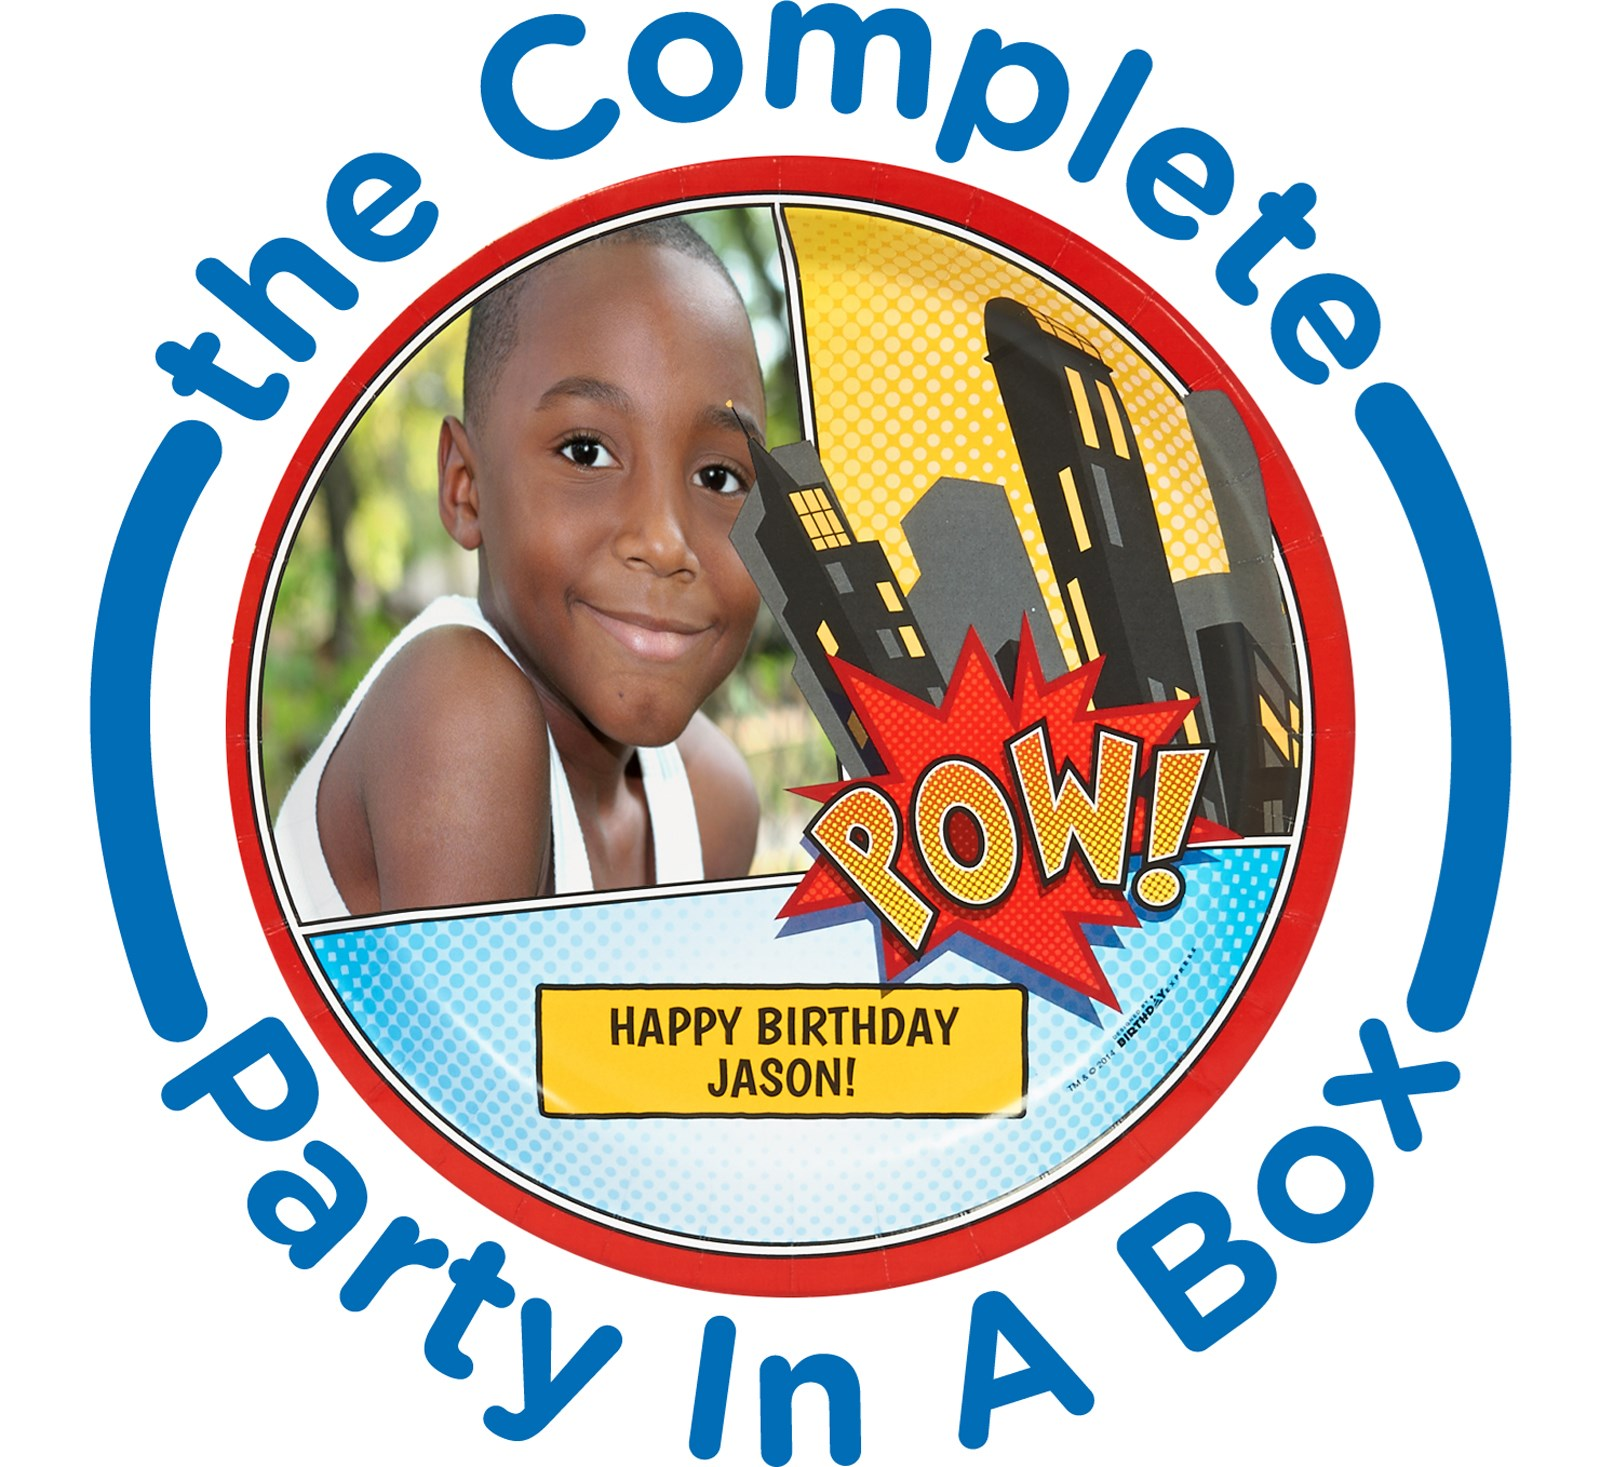 Image of Superhero Comics Personalized Party in a Box - Basic - 16 Guests